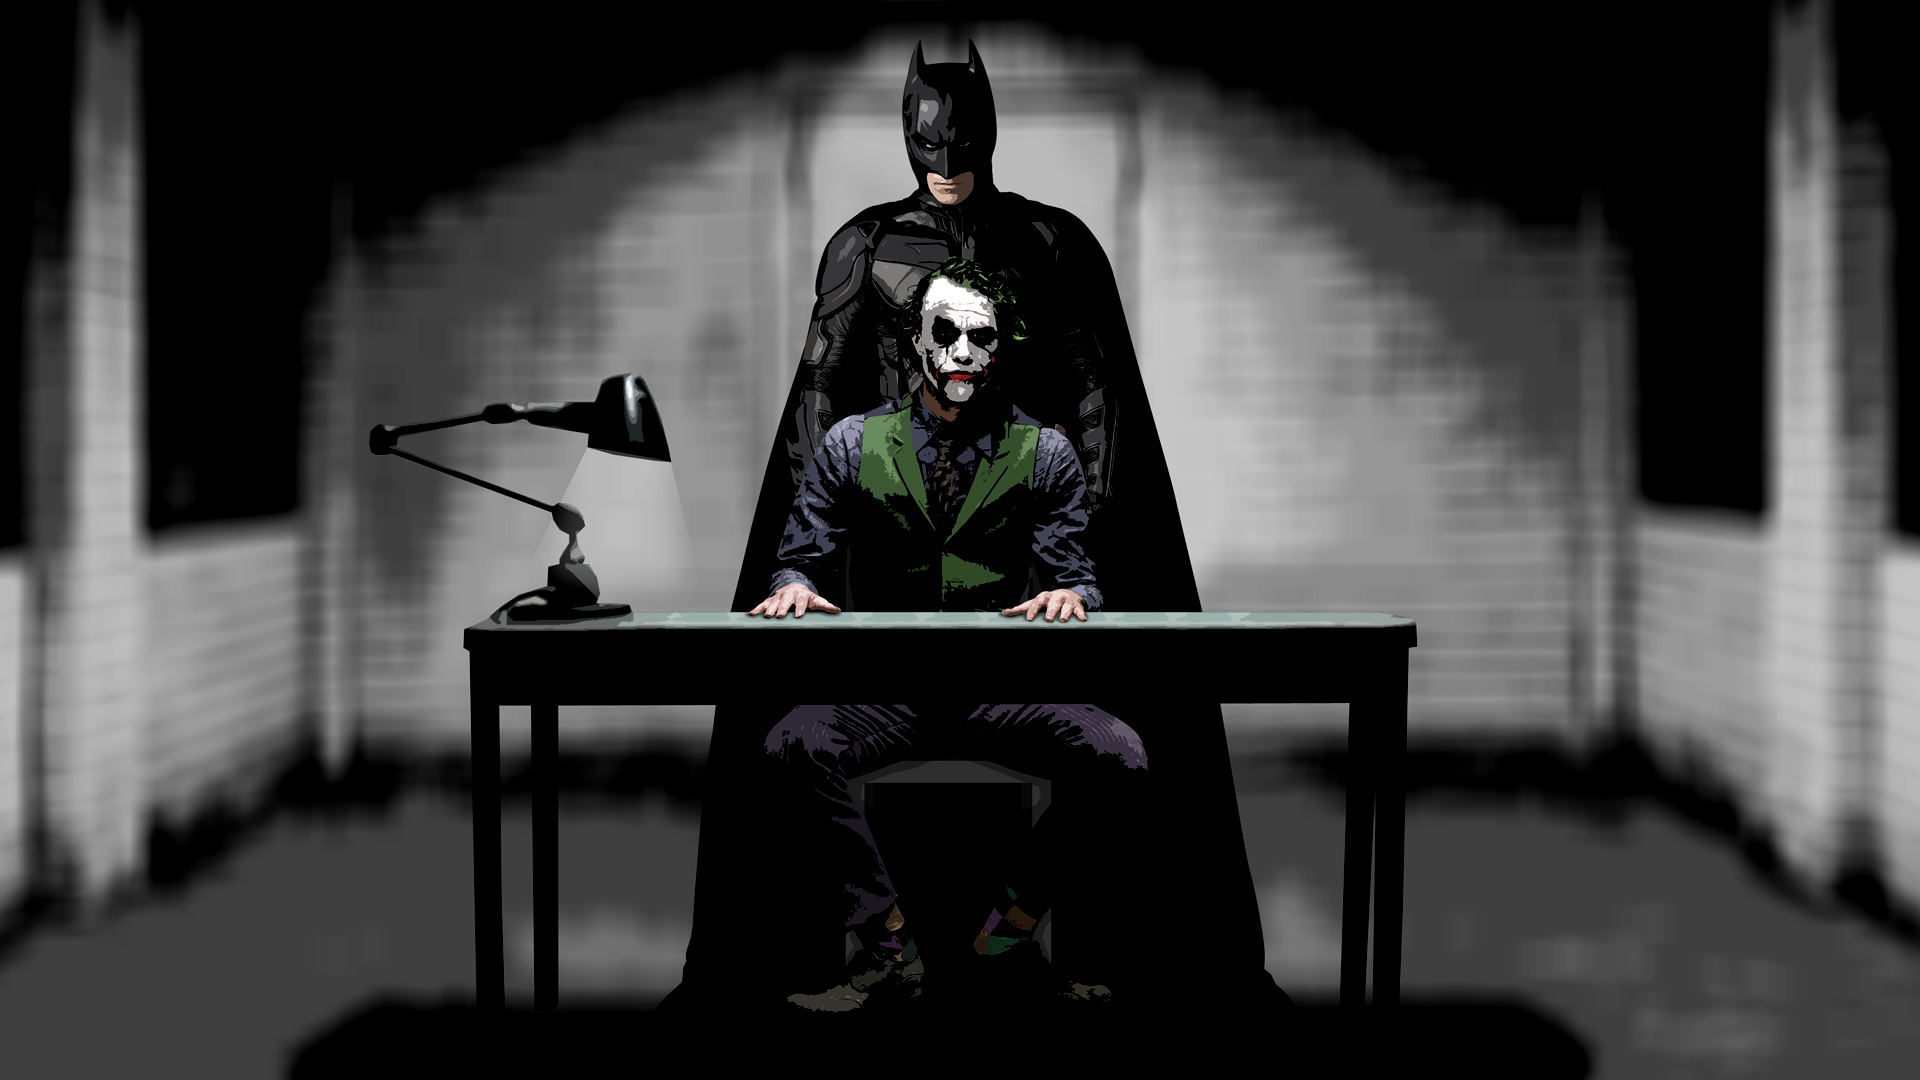 batman the joker the dude 1920x1080 wallpaperjpg 1920x1080